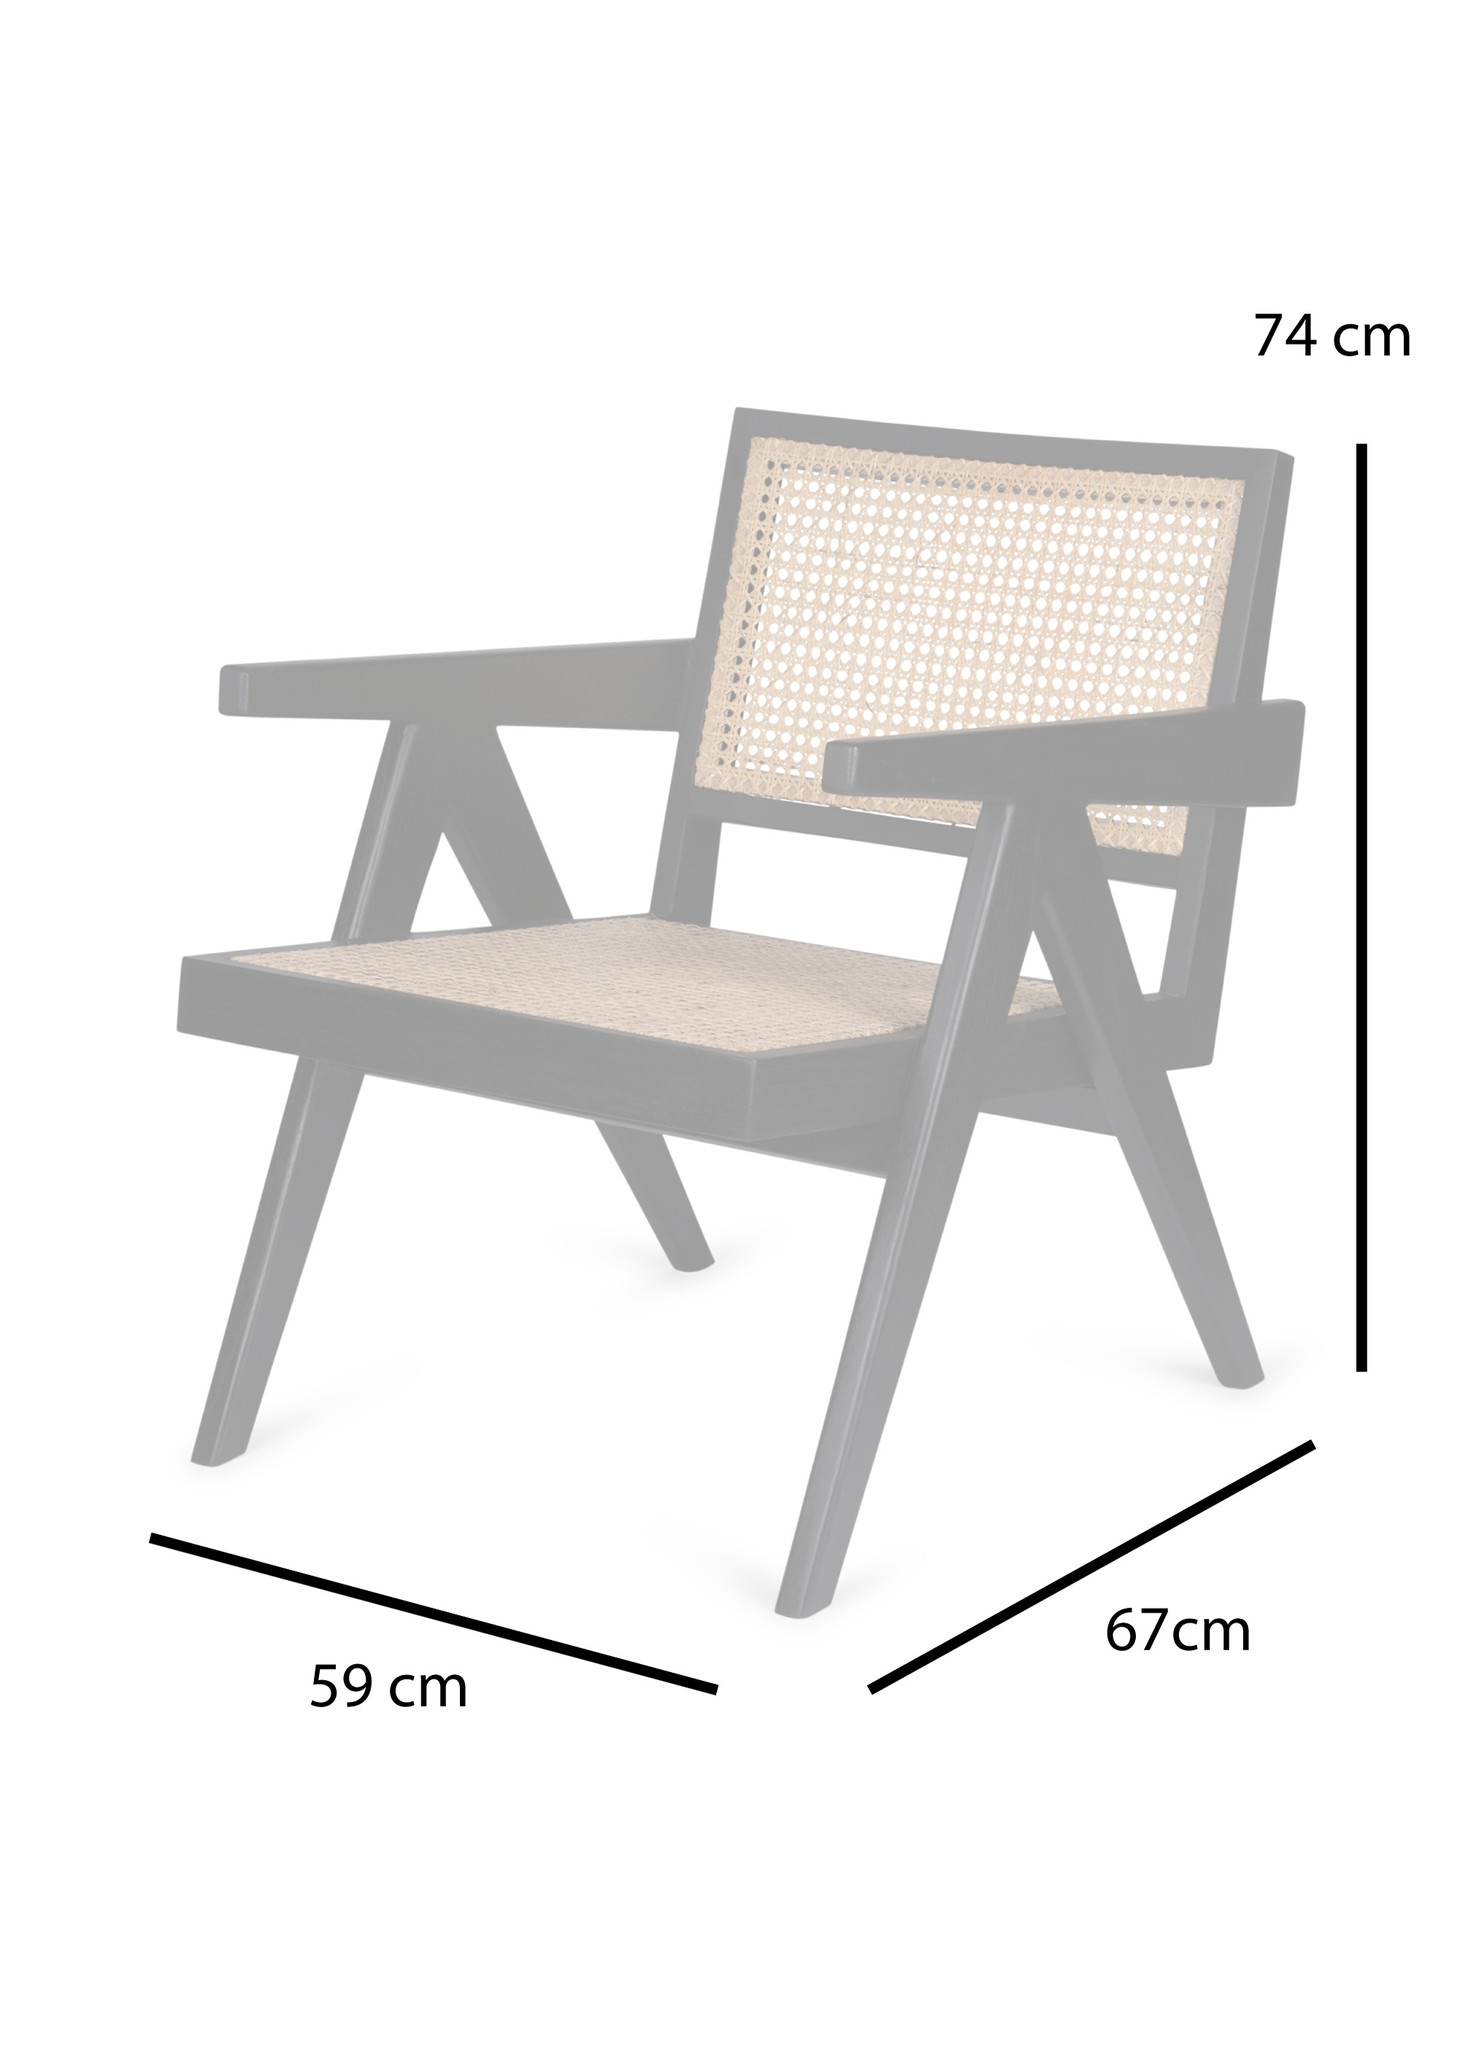 Easy Lounge Chair - Verdunkeltes Teakholz Hochglanz-5